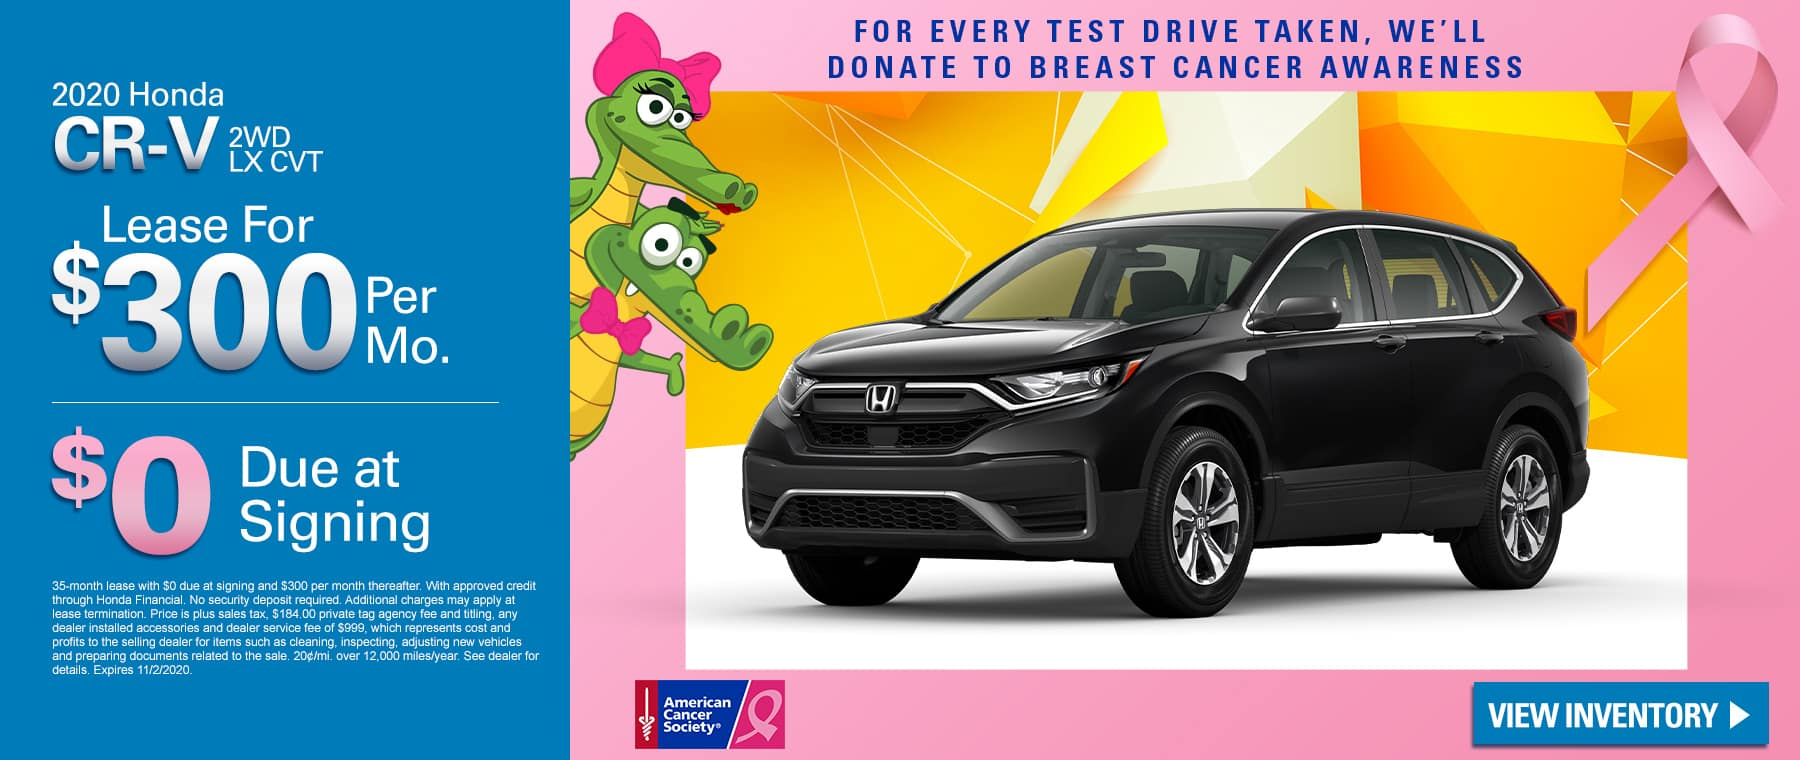 New 2020 Honda CR-V Sedan LX 2WD | Lease For $300 Per Month | $0 Due At Signing | For Every Test Drive Taken, We'll Donate To Breast Cancer Research